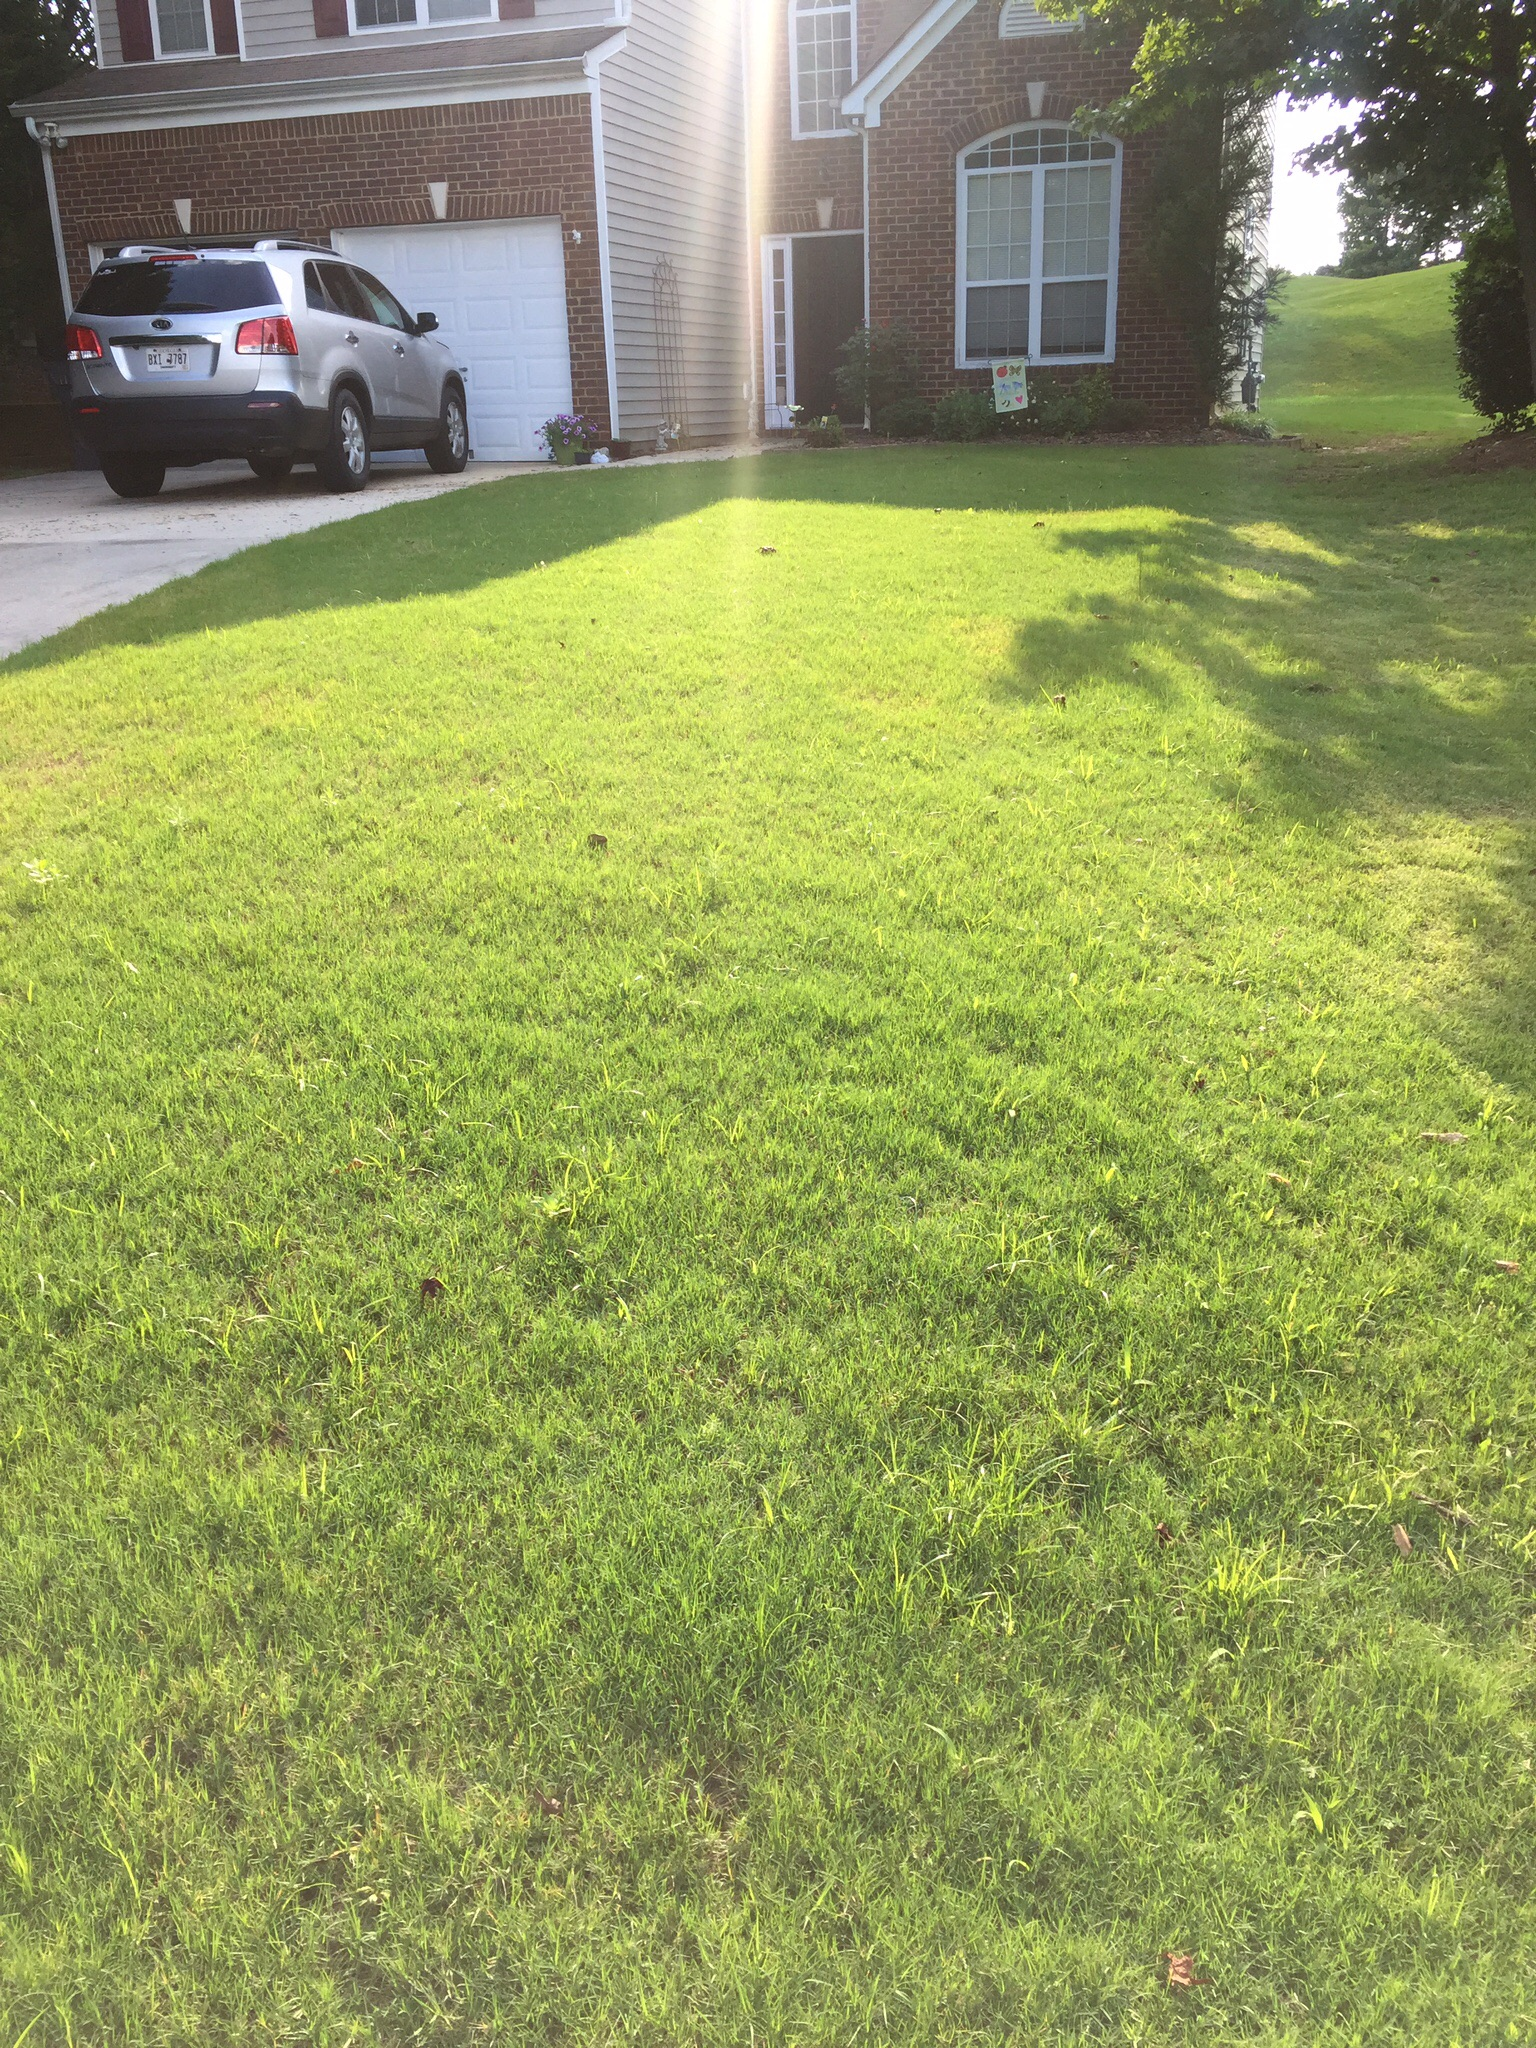 Lawn Care Service in Atlanta, GA, 30310